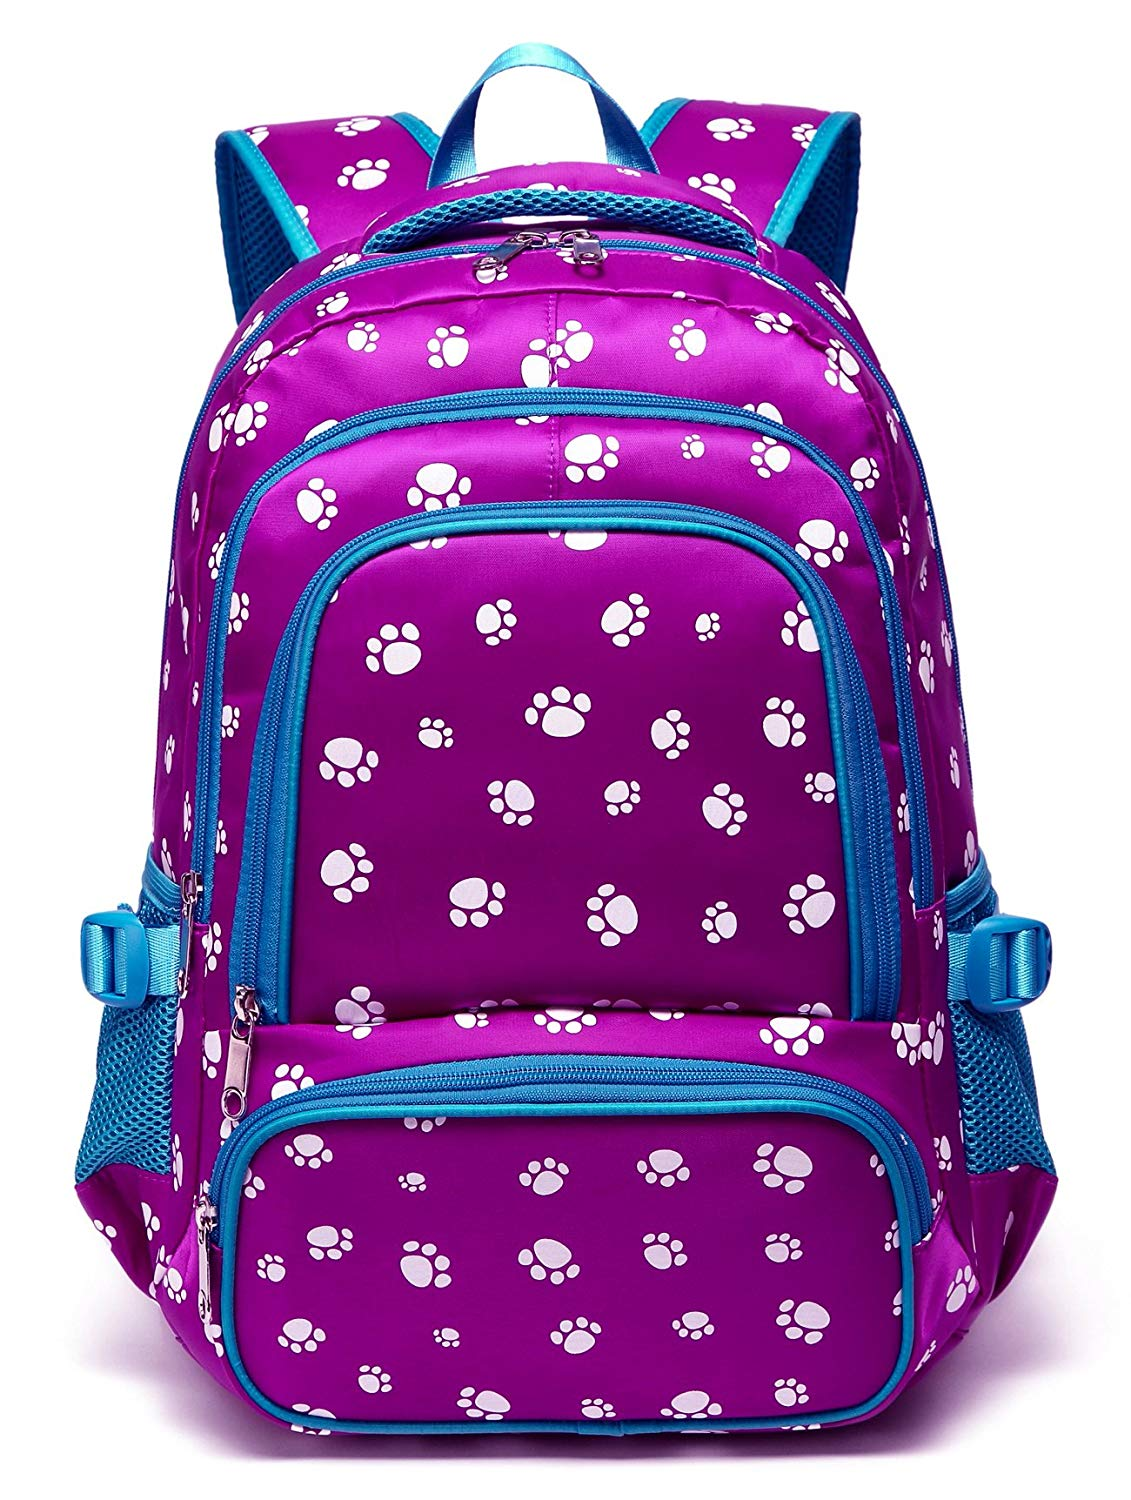 f8d781cfec3d Get Quotations · Kids School Backpacks for Girls School Bags Bookbags for  Children (Purple Blue)